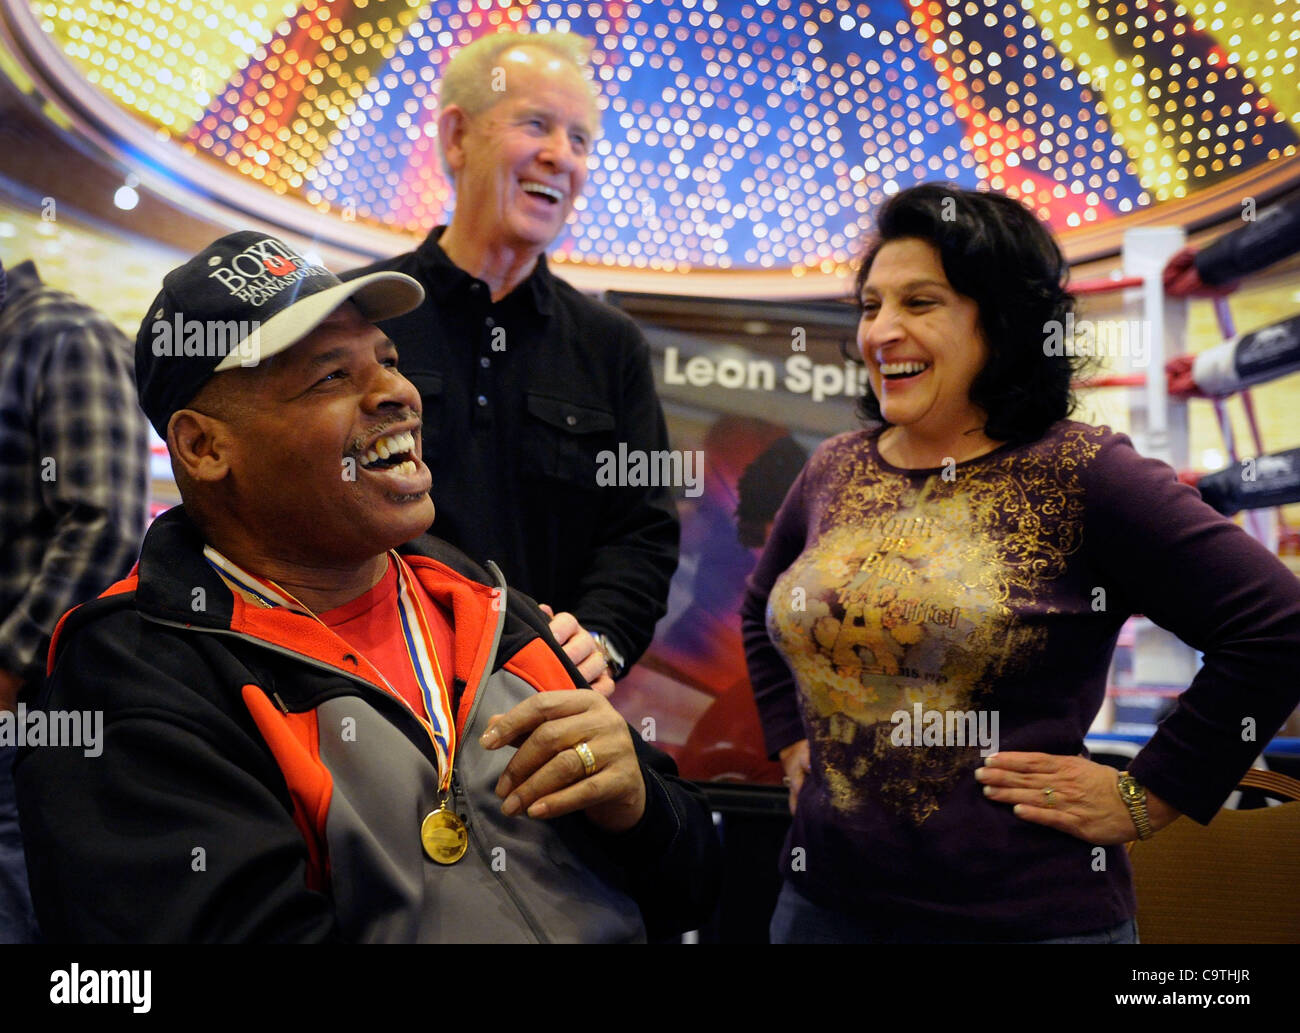 Feb 18 2012 las vegas nevada us retired boxer leon spinks 18 2012 las vegas nevada us retired boxer leon spinks l shares a laugh with al and tracy embry during a meet and greet session at the mgm grand kristyandbryce Choice Image